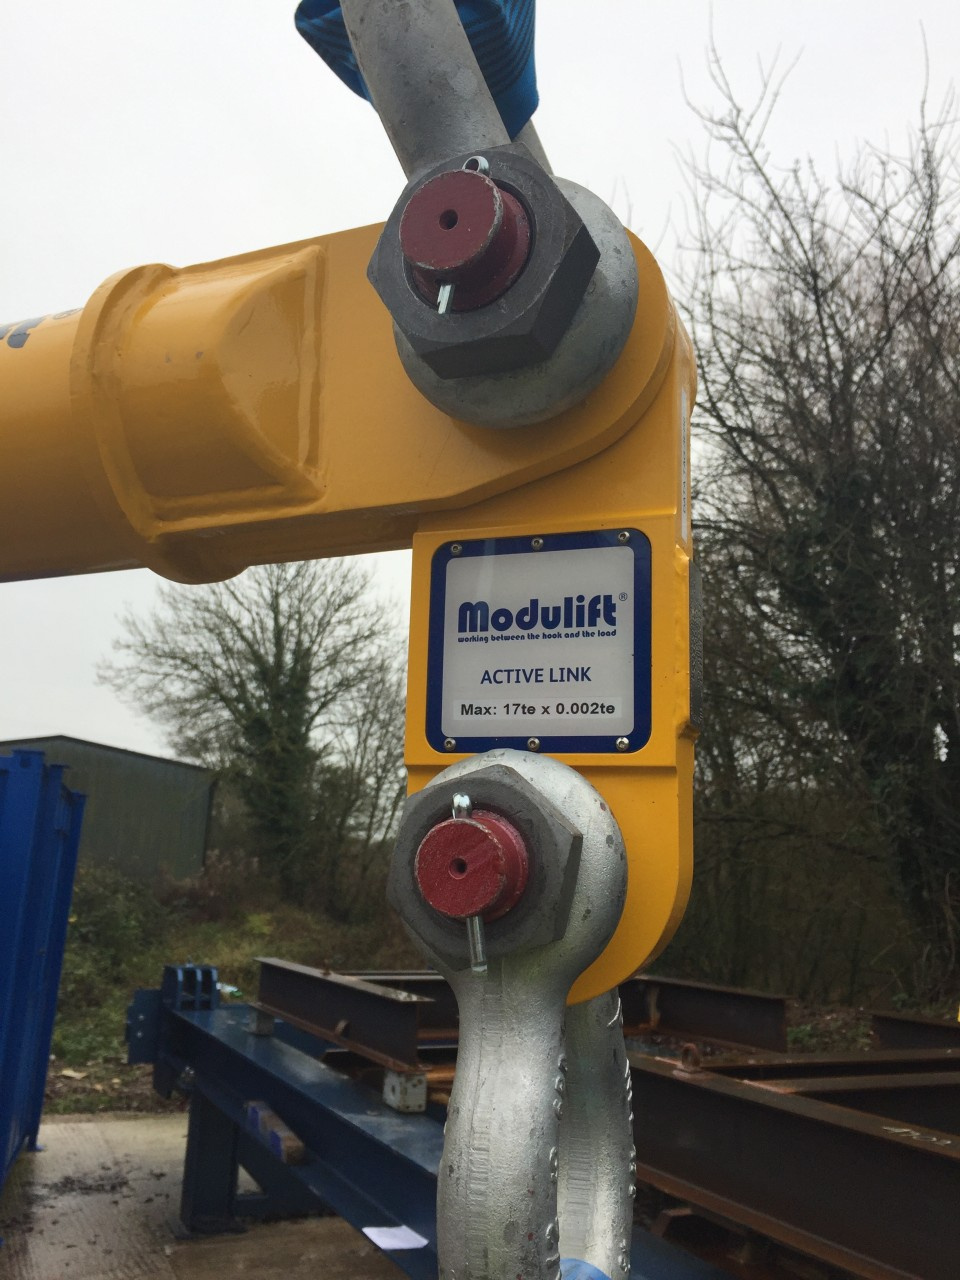 Modulift Revolutionises Load Monitoring Capabilities with New Active Link Spreader Beam